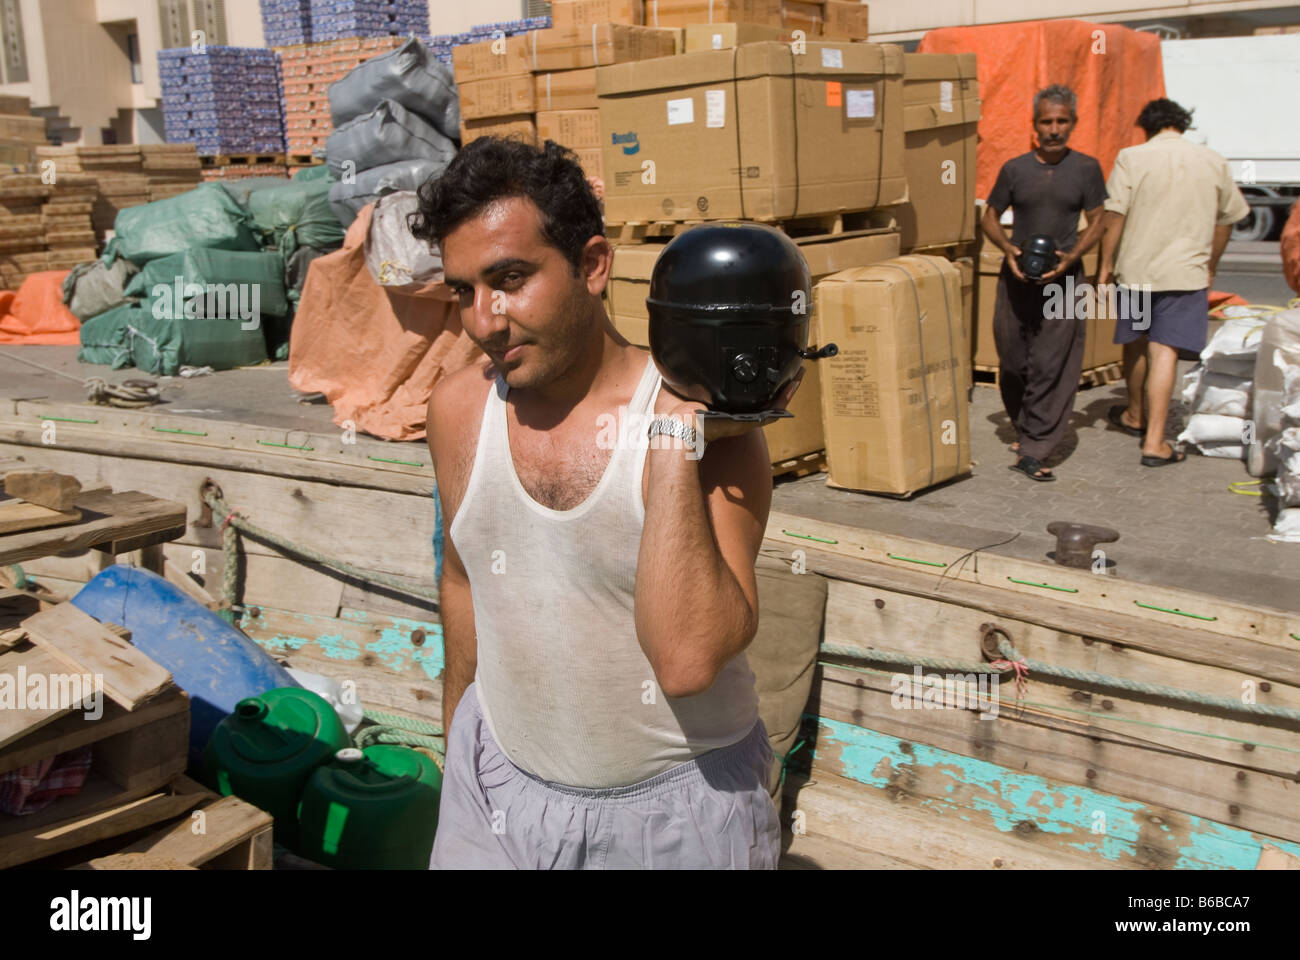 A worker in Dubai Creek loading small engines on a ship which will leave for Iran that same night despite international Stock Photo